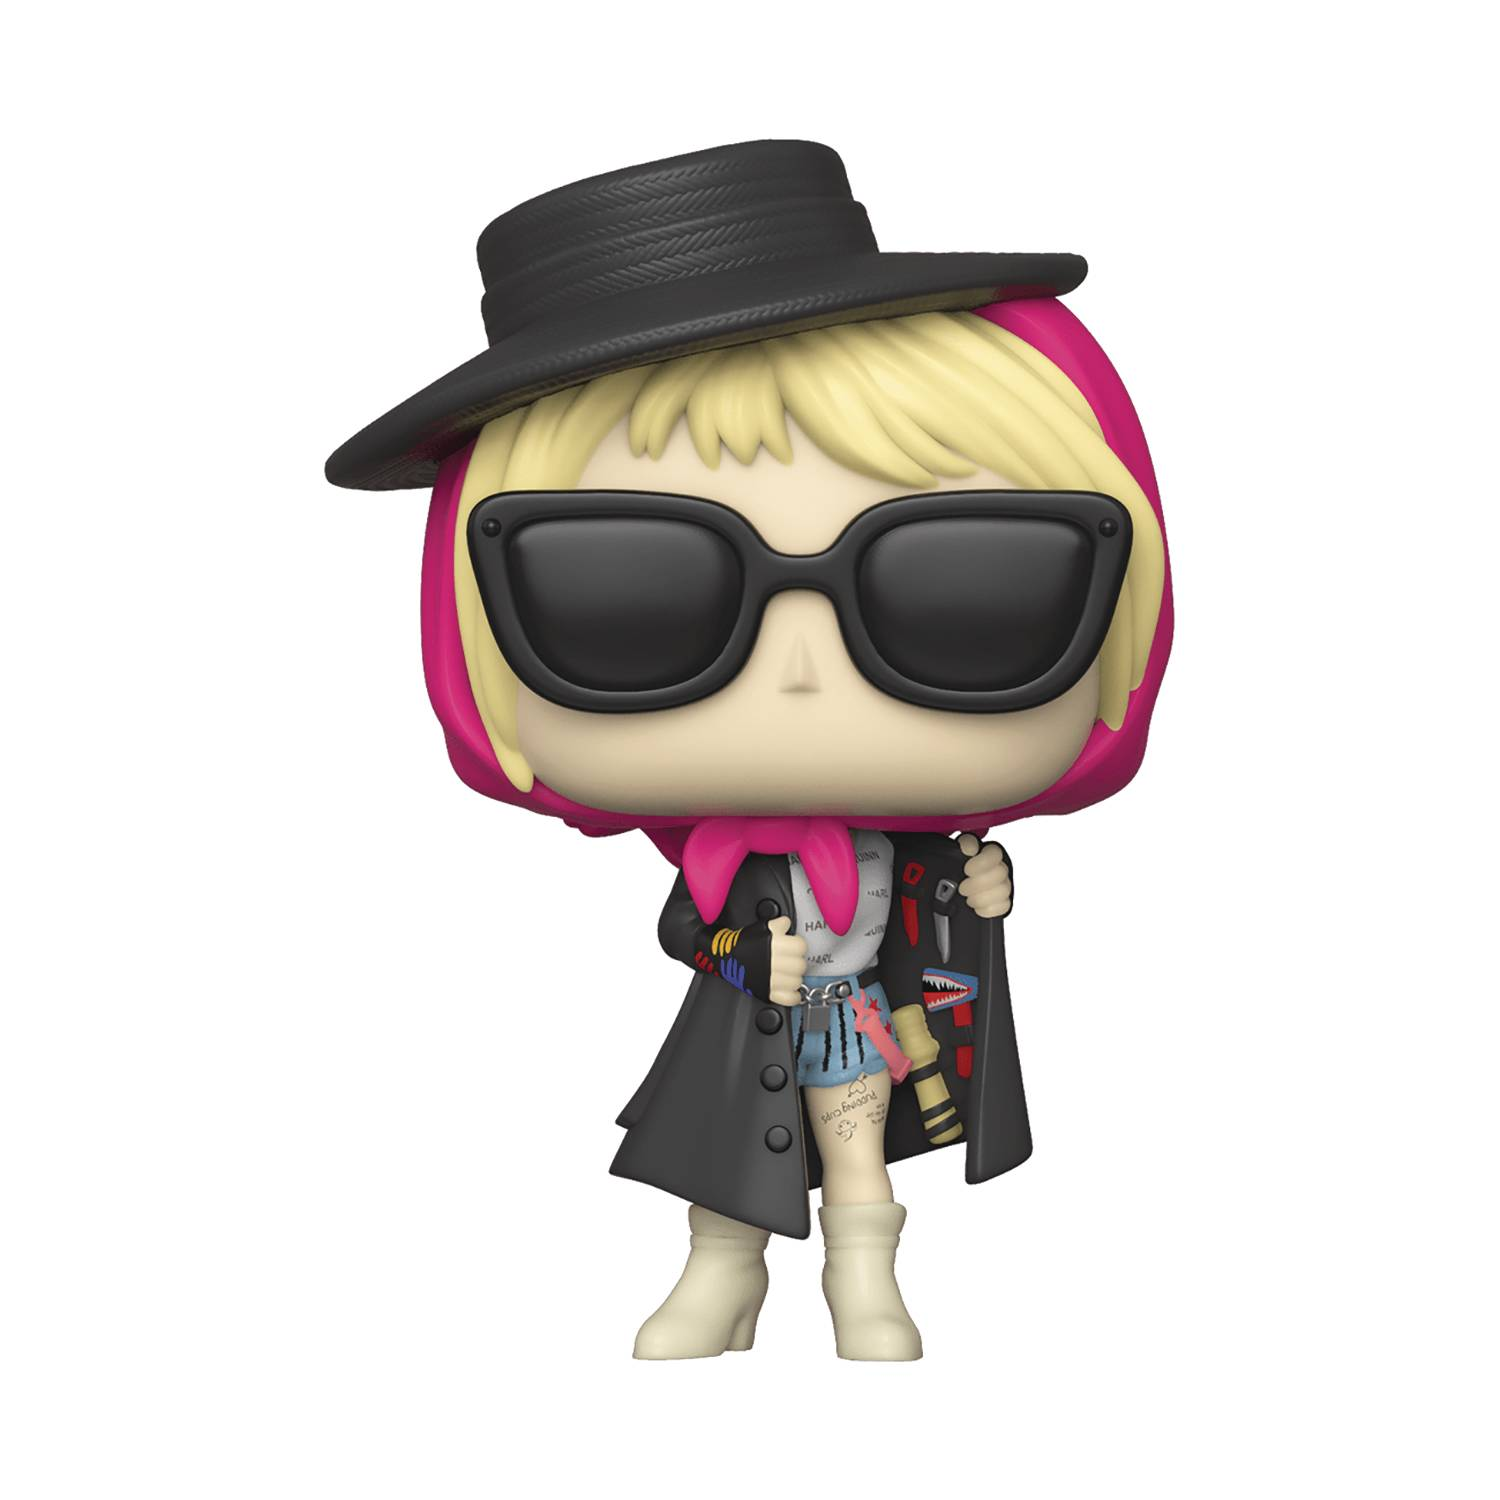 Funko Pop Birds of Prey Harley Quinn Specialty Series